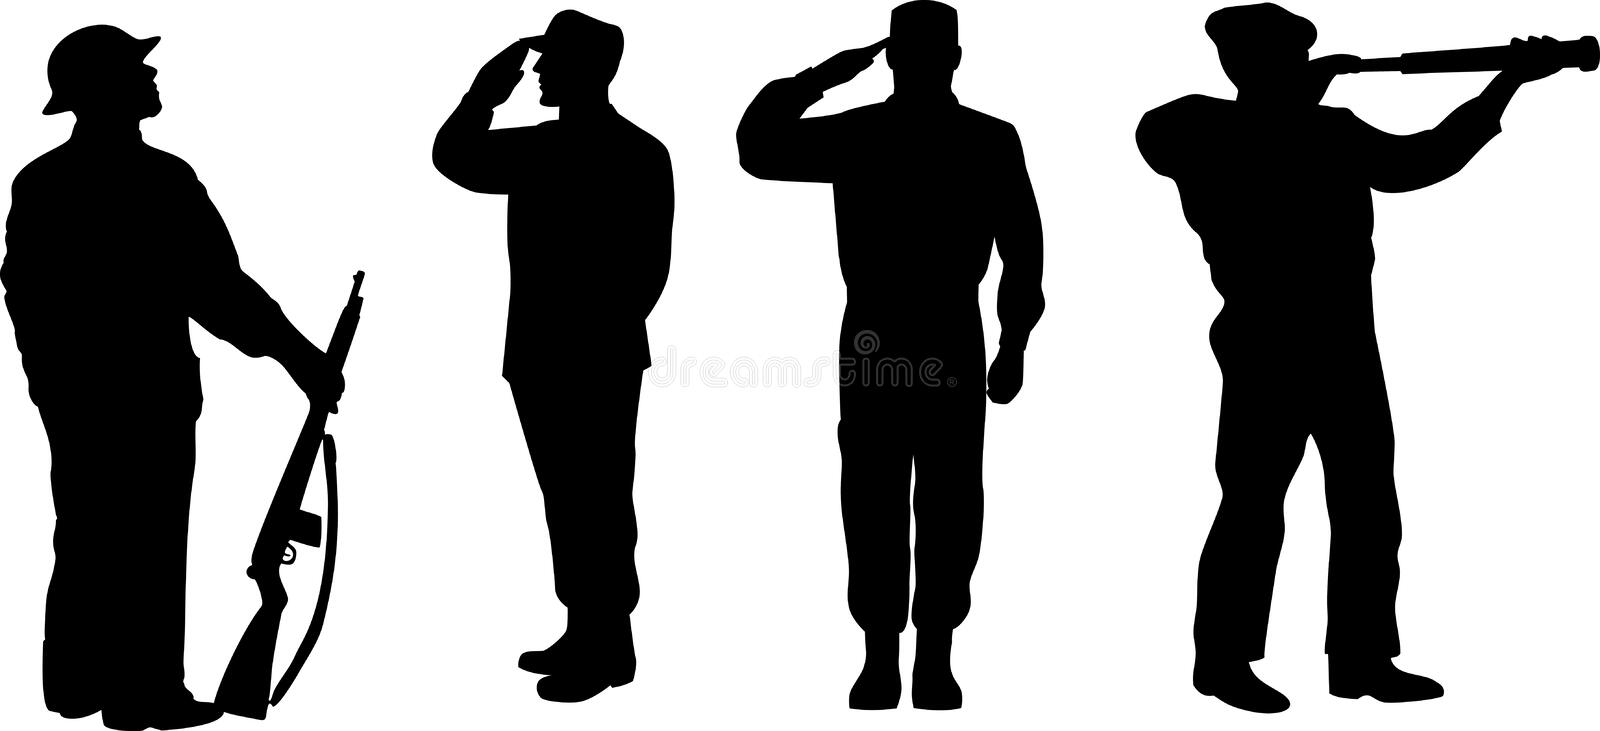 Download Military Army Men Silhouette Stock Image - Image: 7698761